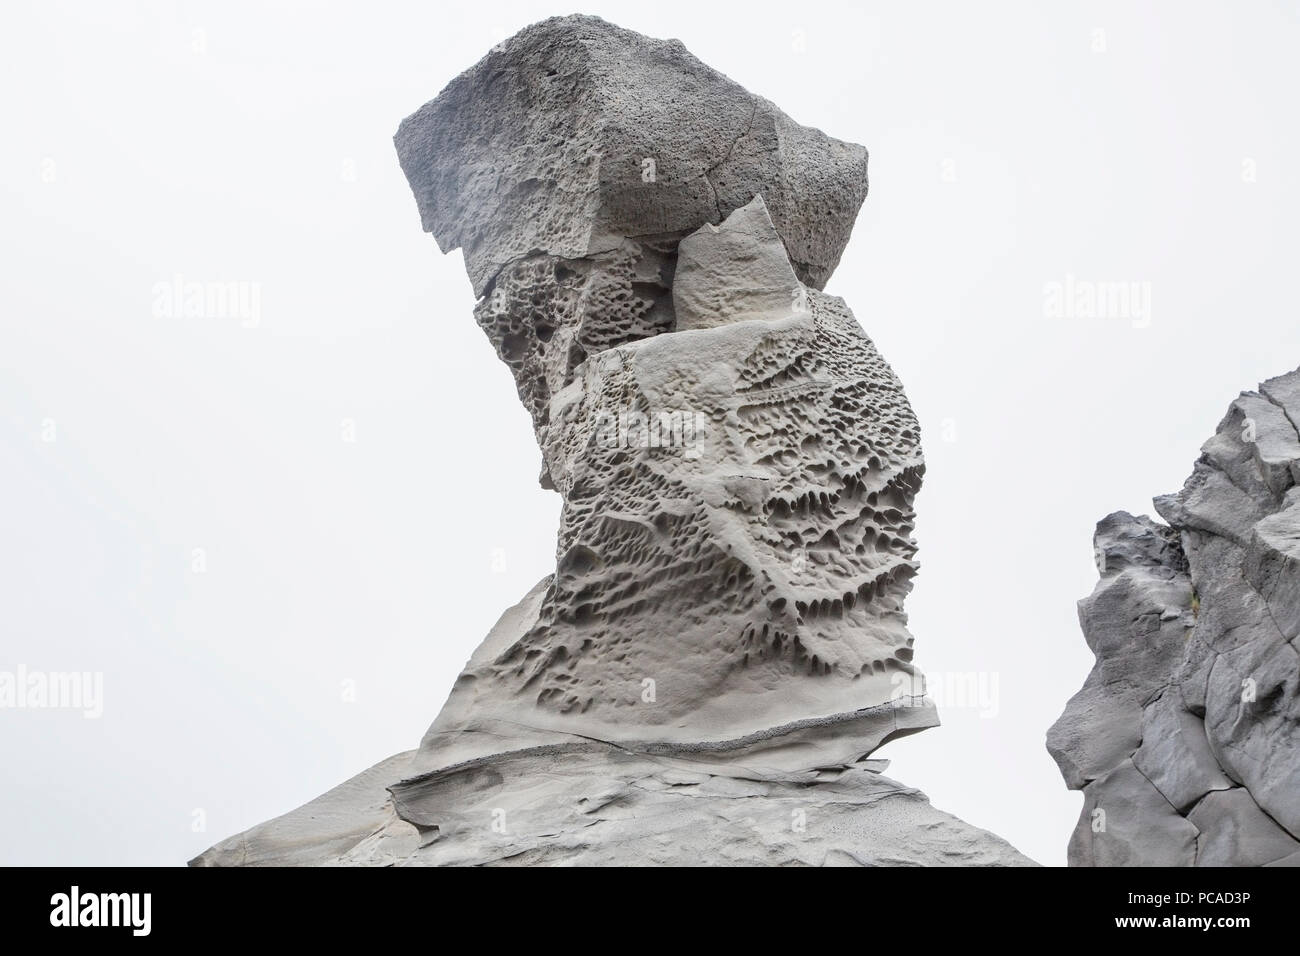 view of volcanic rock formation at bridge between the continents, Iceland - Stock Image